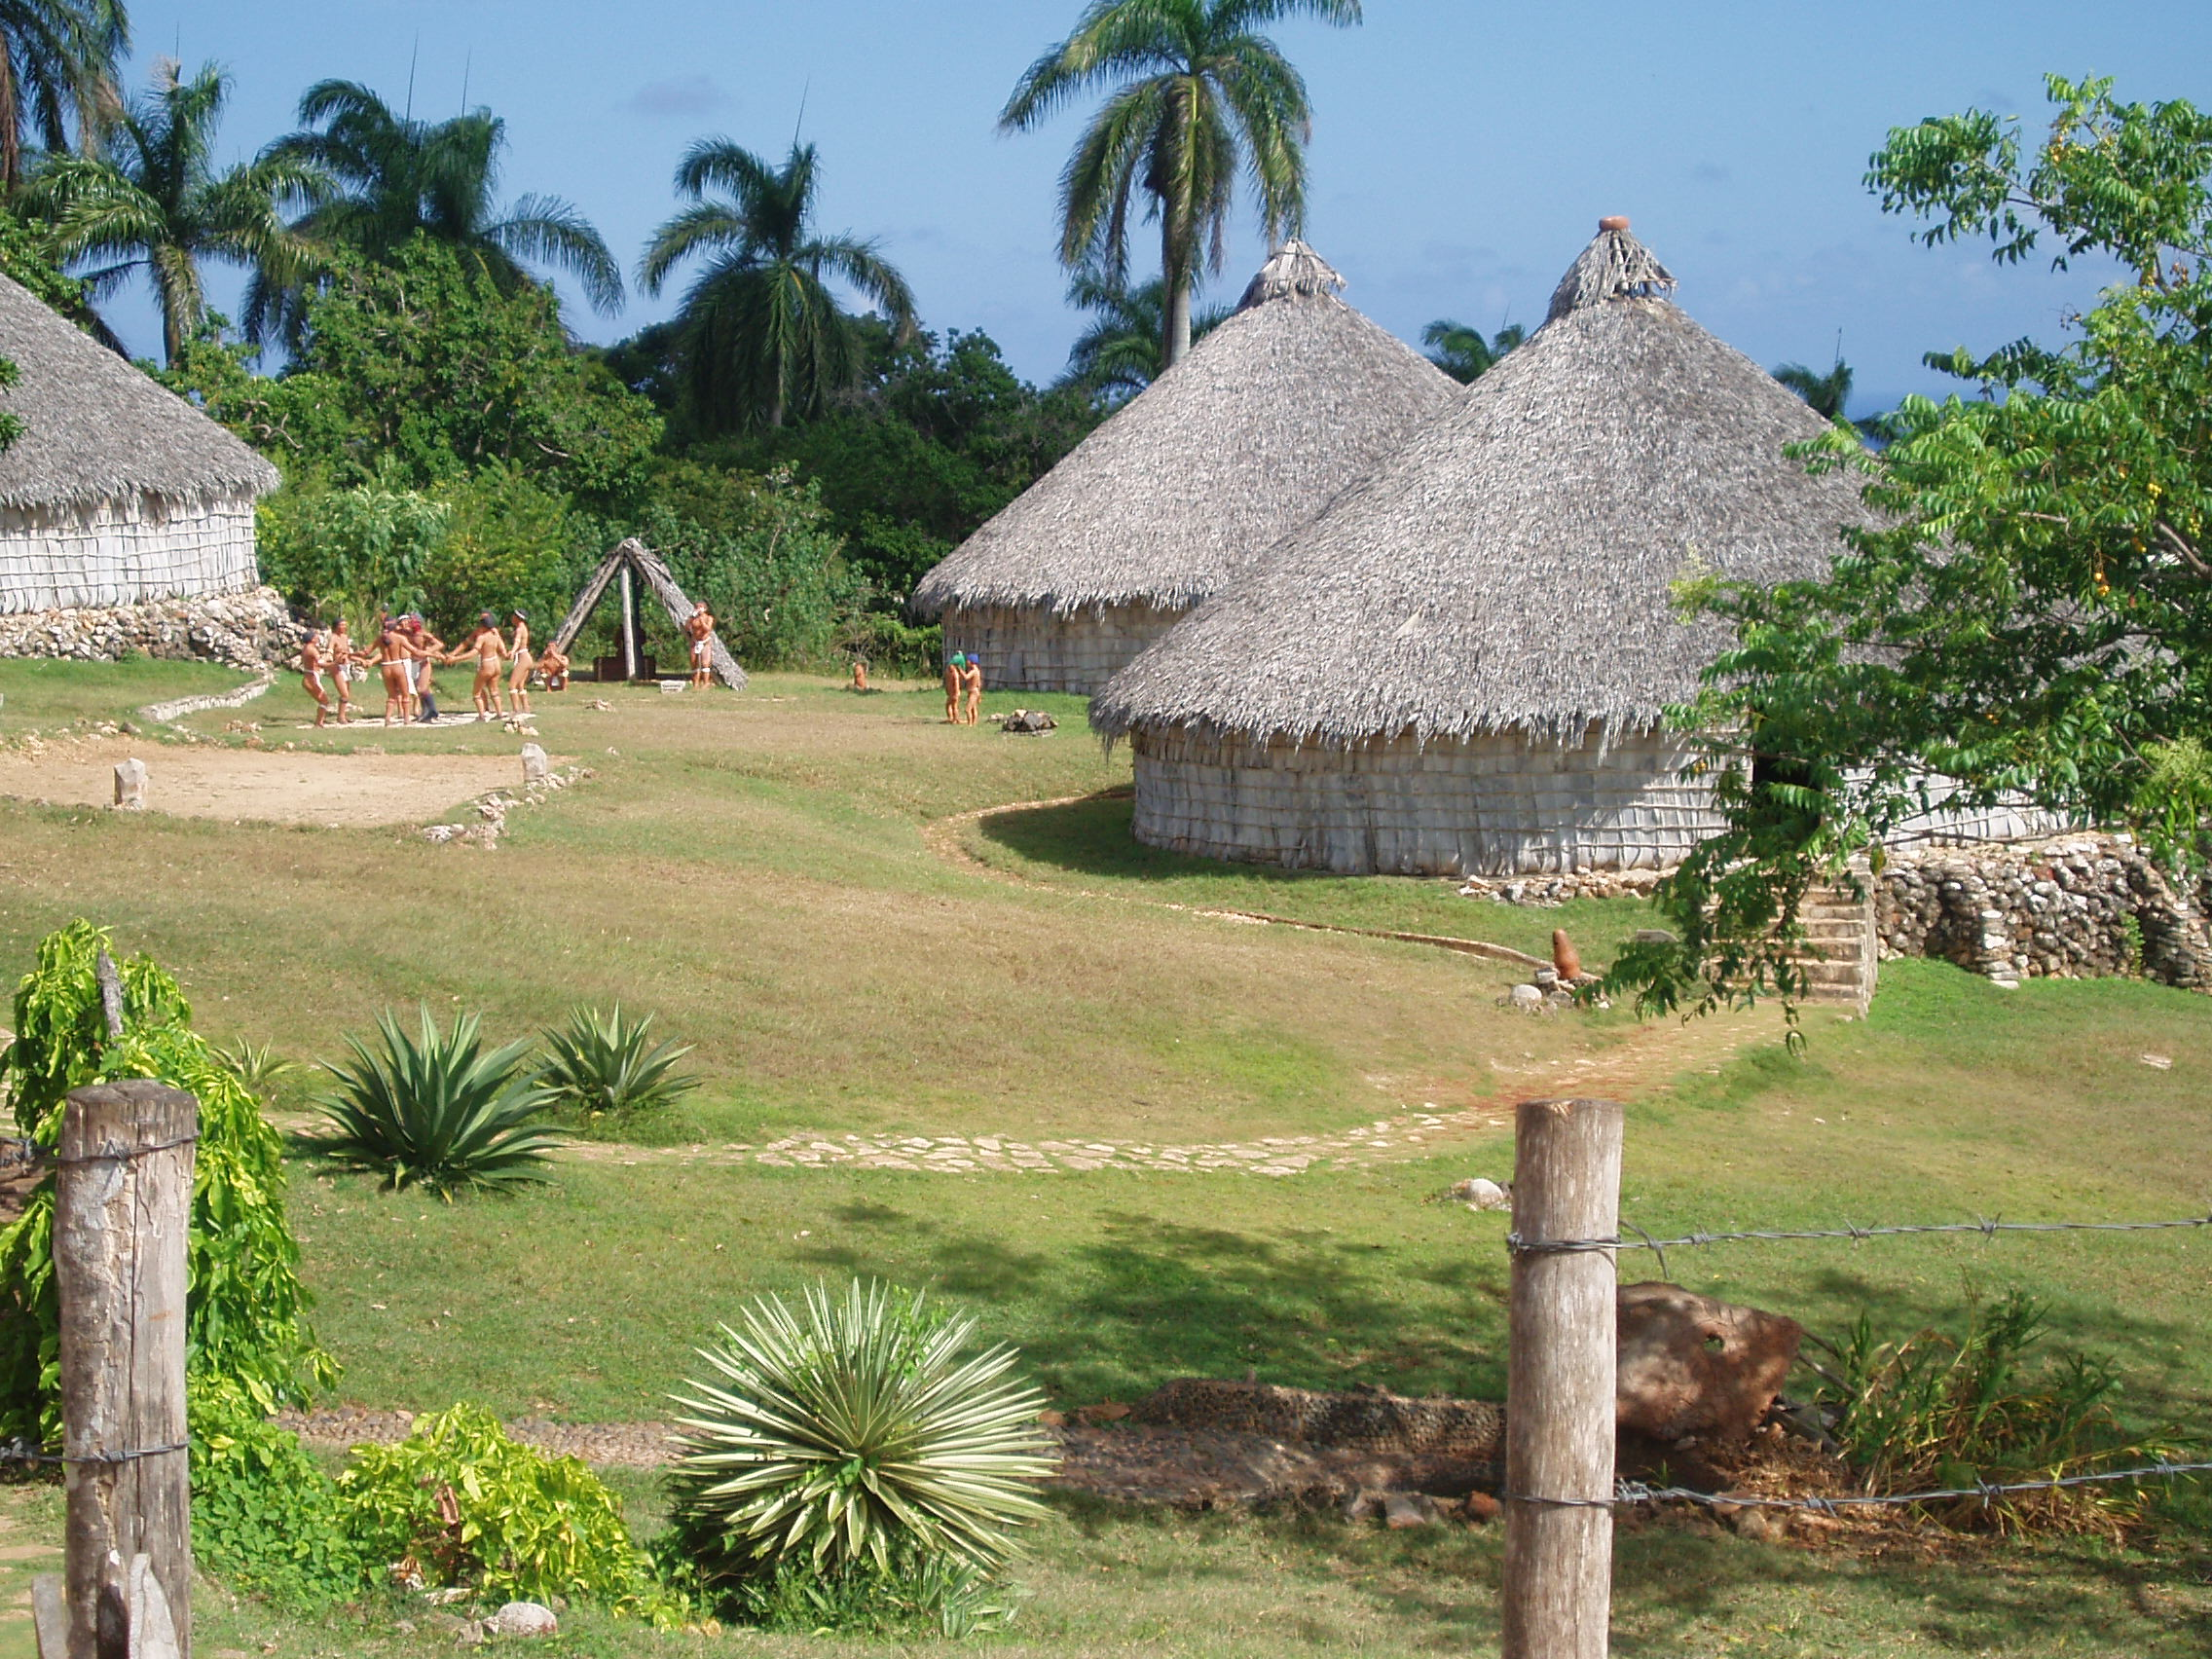 http://upload.wikimedia.org/wikipedia/commons/e/e5/Reconstruction_of_Taino_village%2C_Cuba.JPG